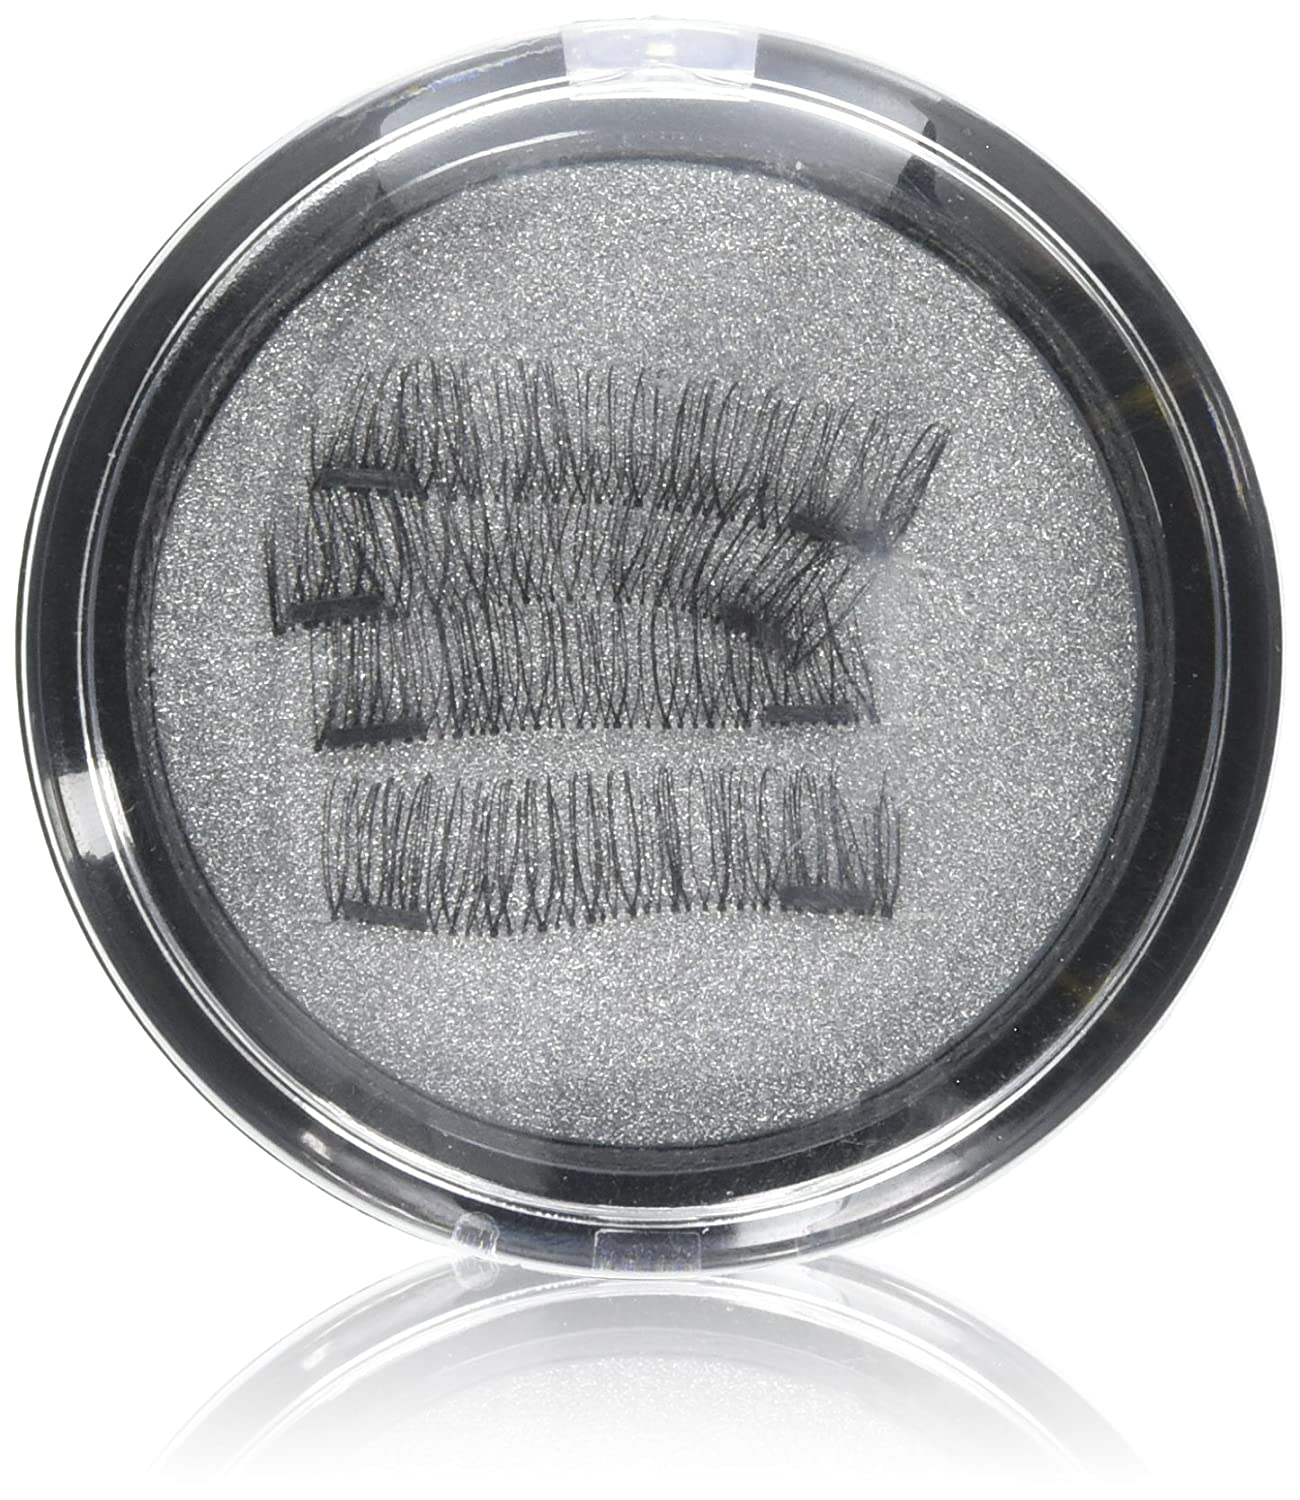 9caa2e565b5 Amazon.com : Magnetic Eyelashes [No Glue] Premium Quality False Eyelashes  Set for Natural Look - Best Fake Lashes Extensions 3D Reusable (8 PCS) :  Beauty